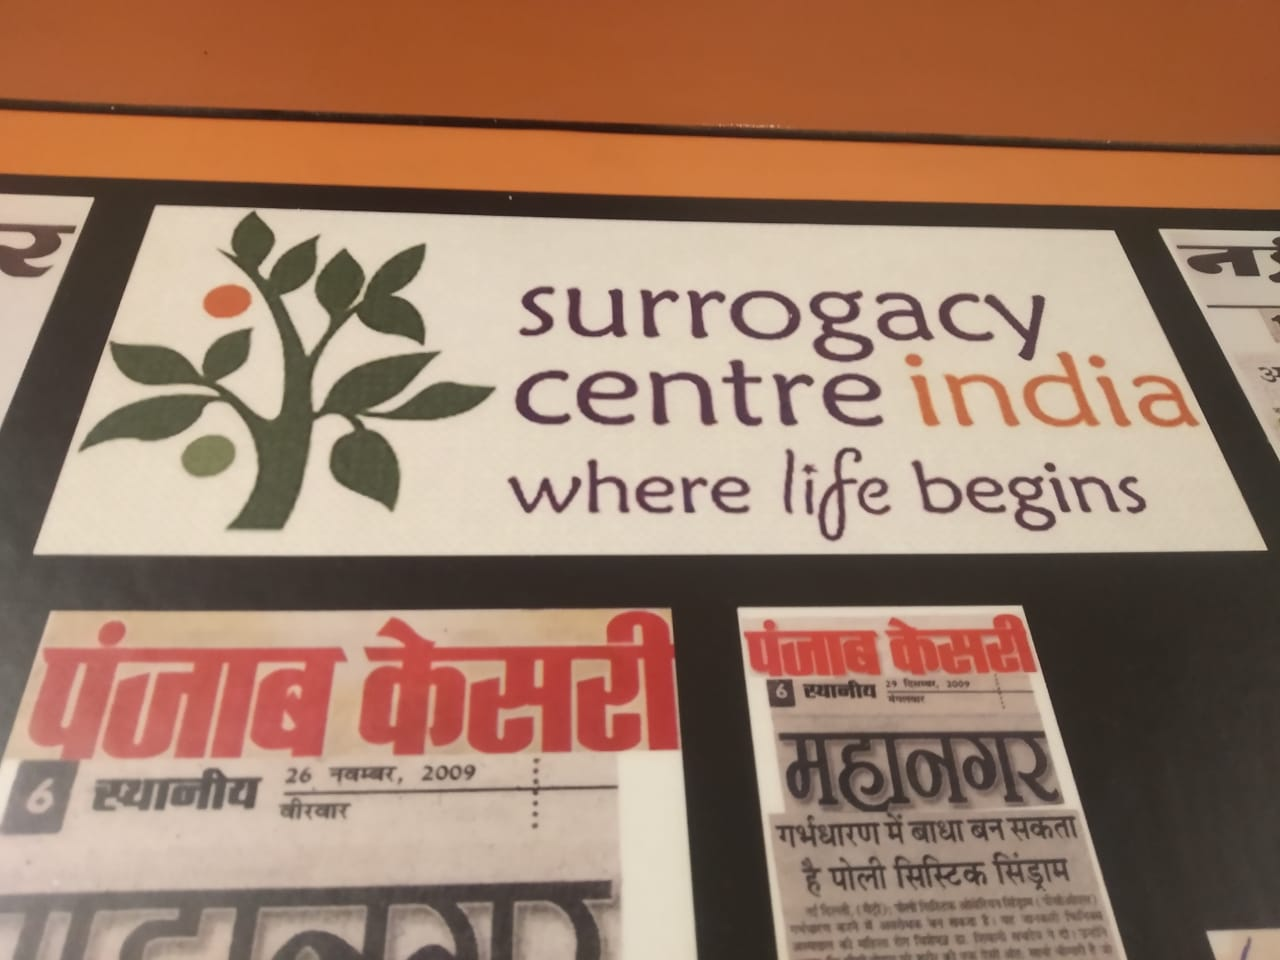 Surrogacy Centre India in Punjab Kesari